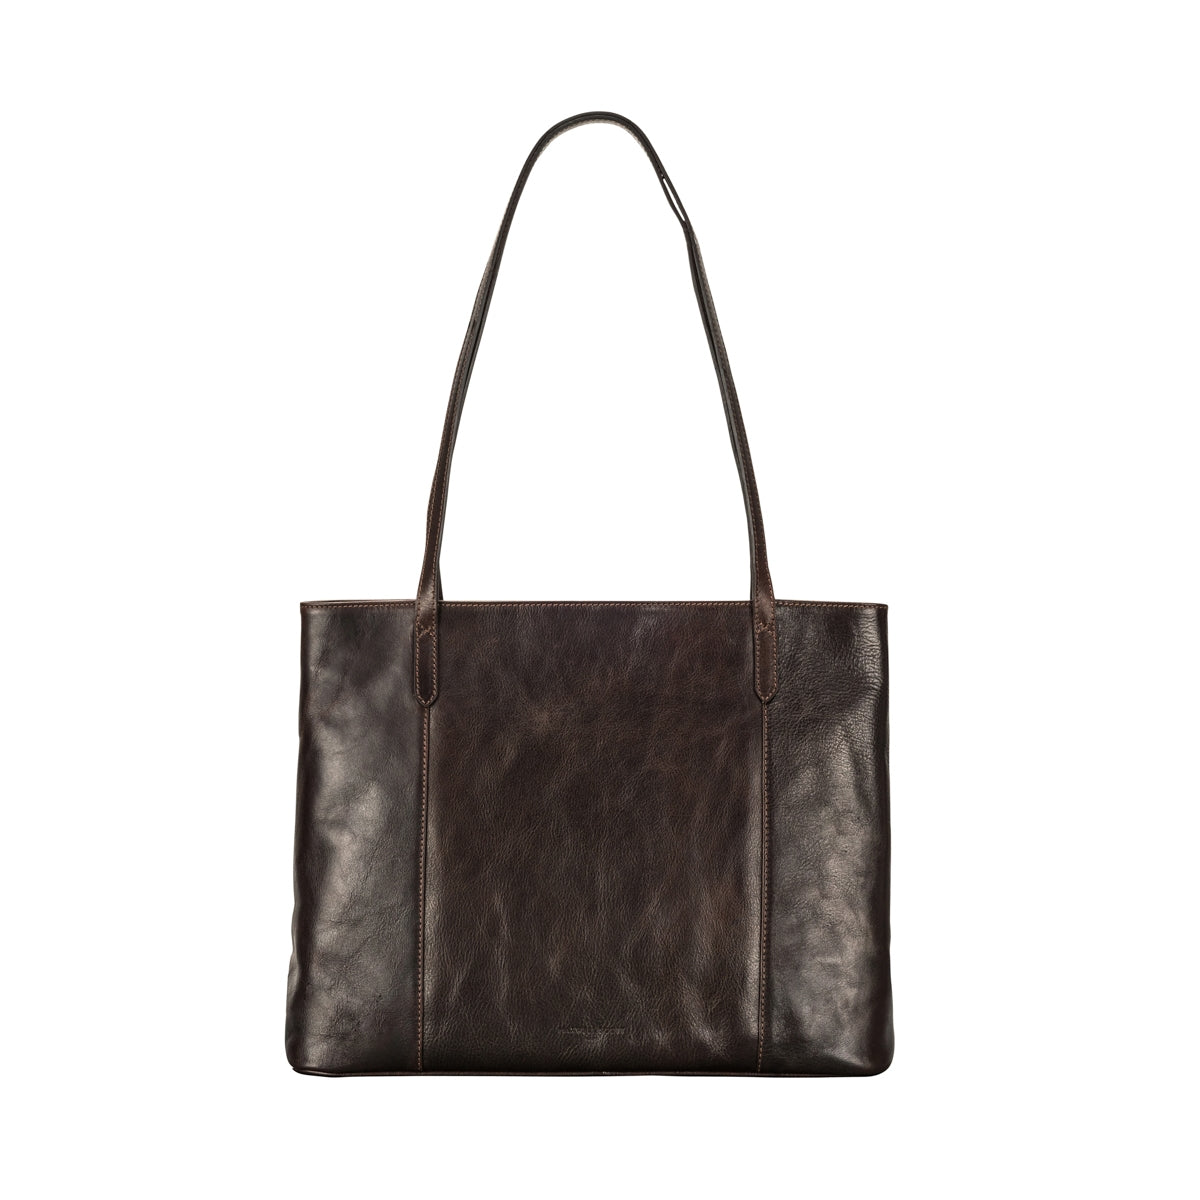 Image 4 of the 'Athenea' Dark Chocolate Veg-Tanned Leather Shopper